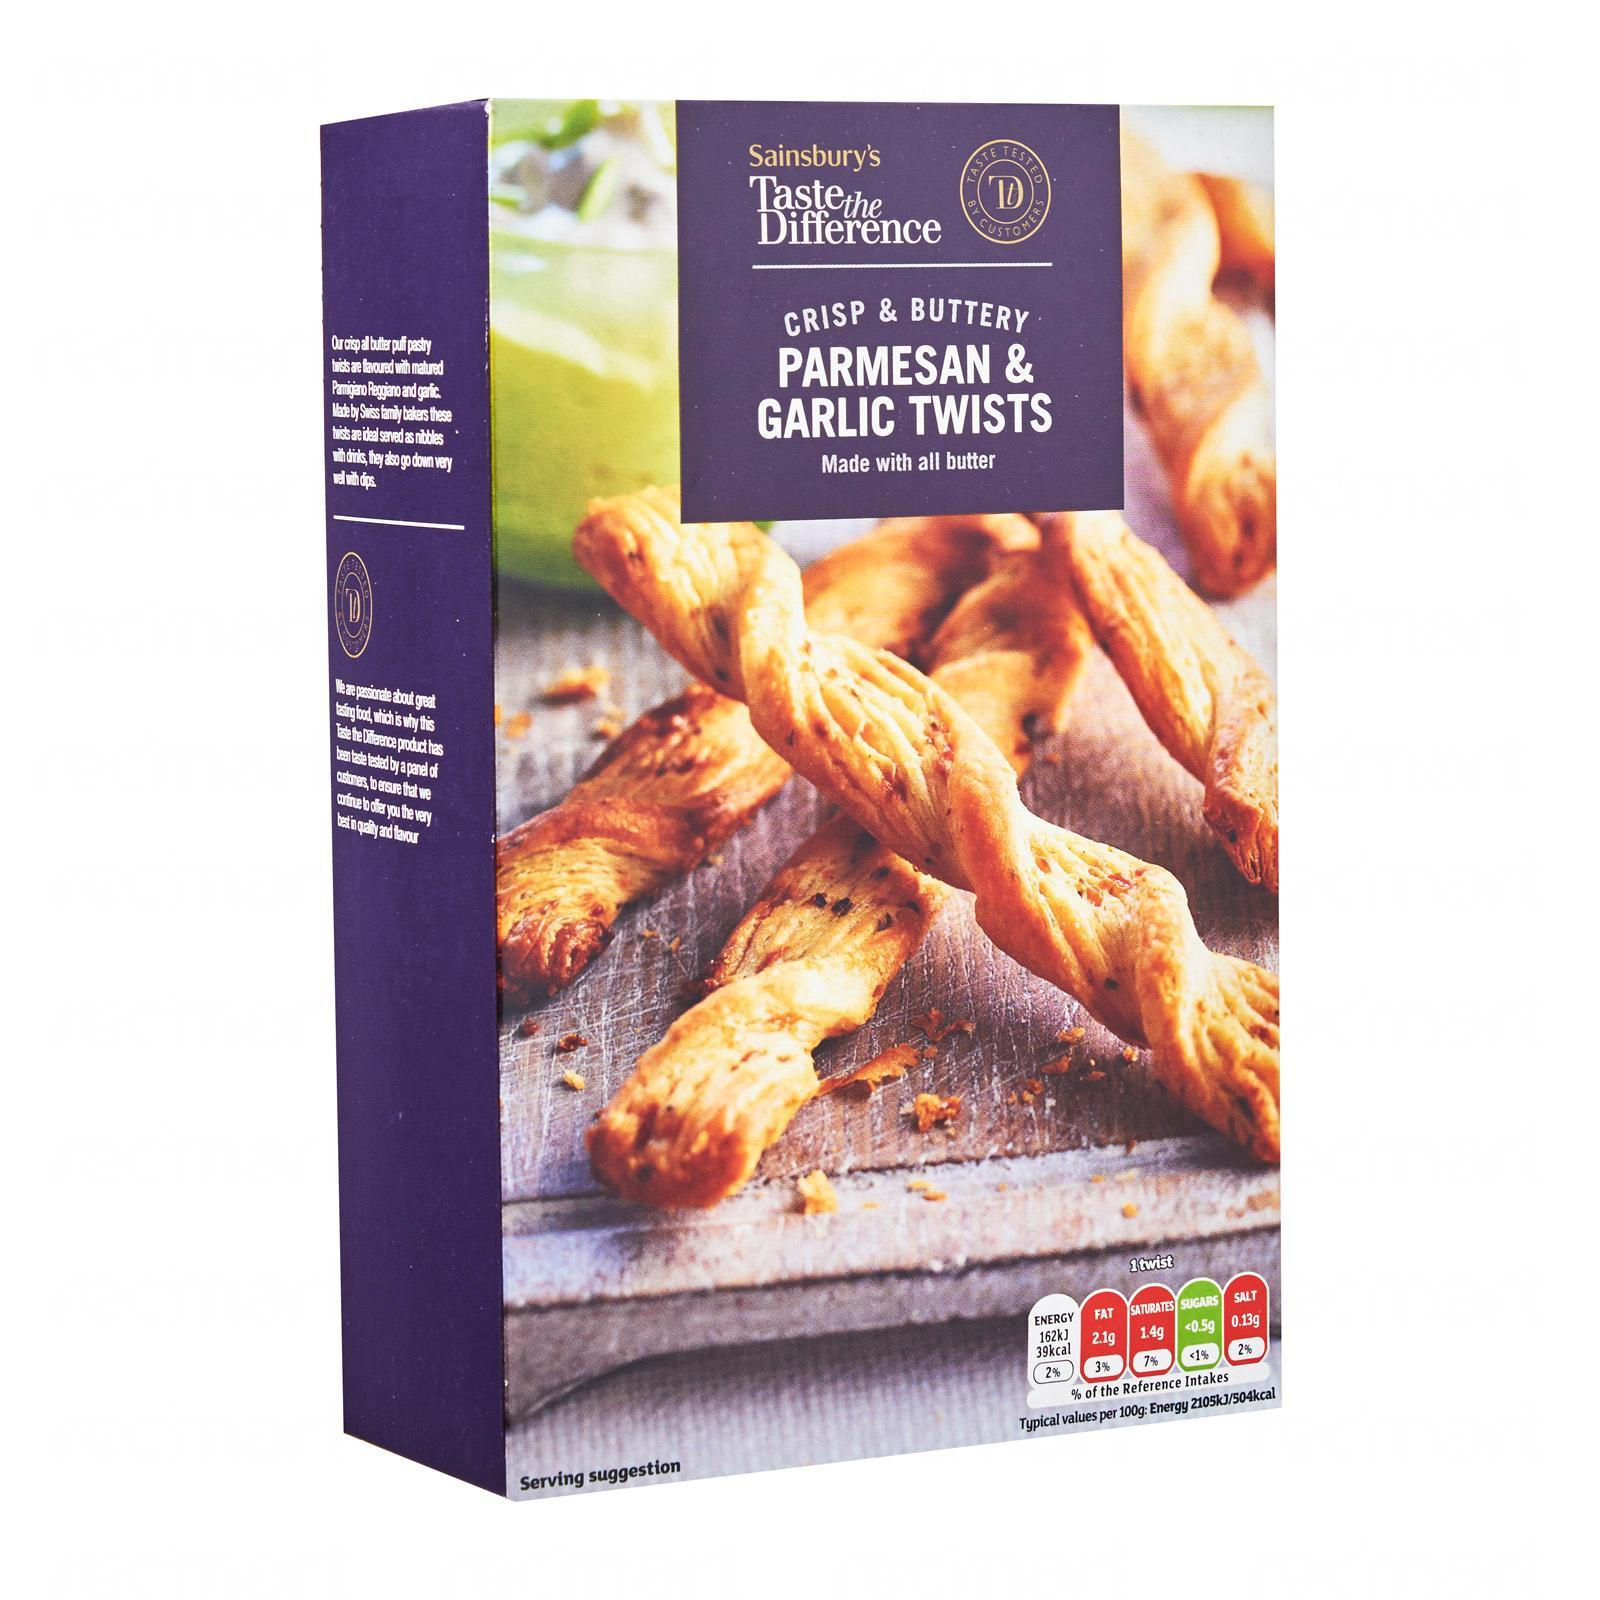 Sainsbury's Taste The Difference Parmesan and Garlic Twists